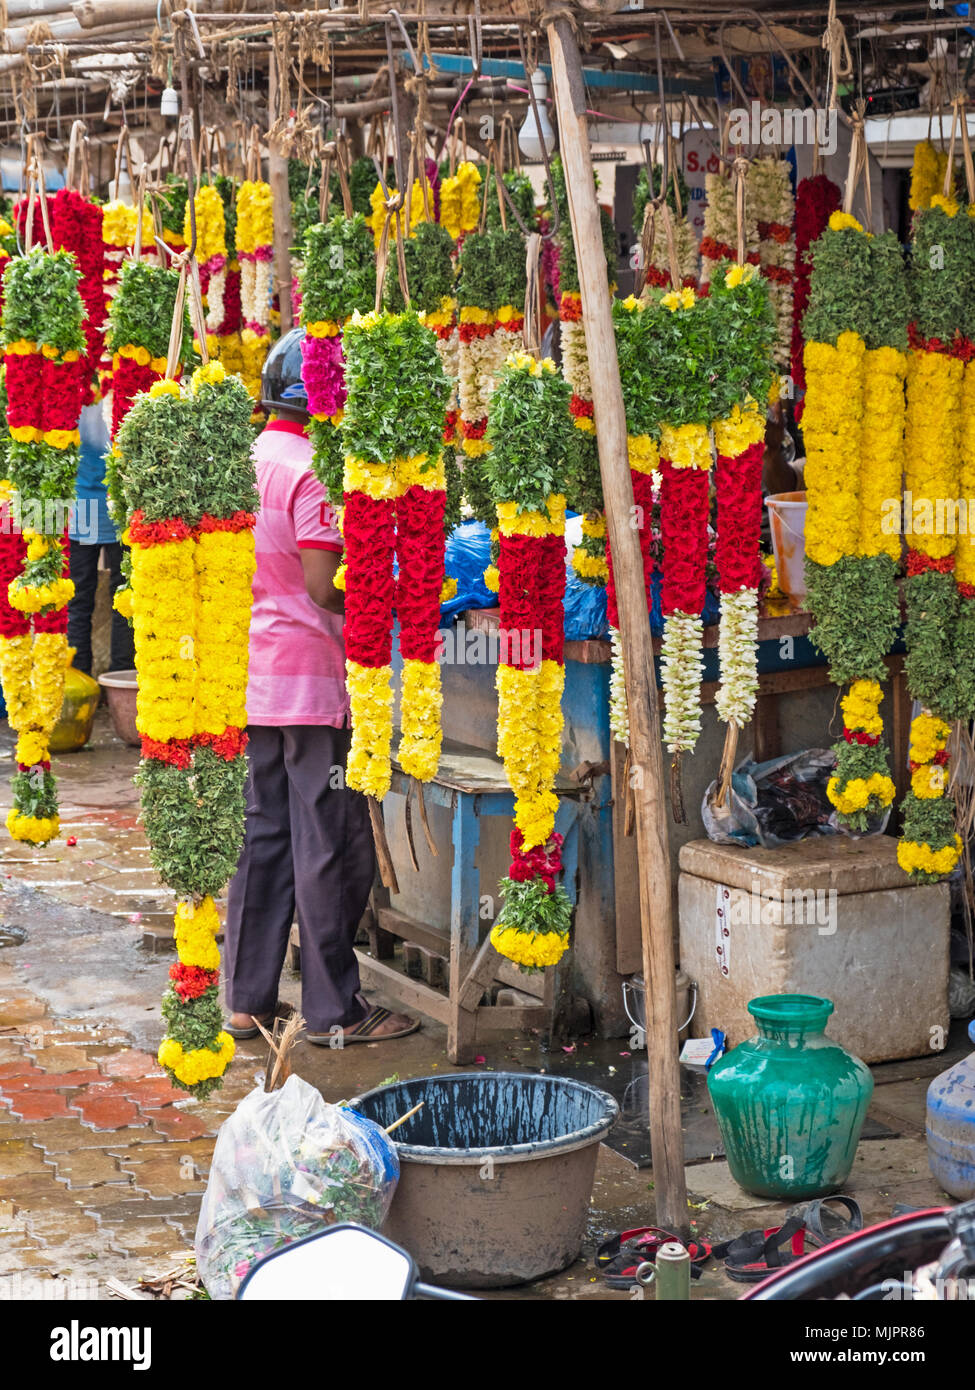 Garlands for sale in a street market in Tamil Nadu, India. They are widely used for dedications in Hindu rituals and for decoration at festivals - Stock Image